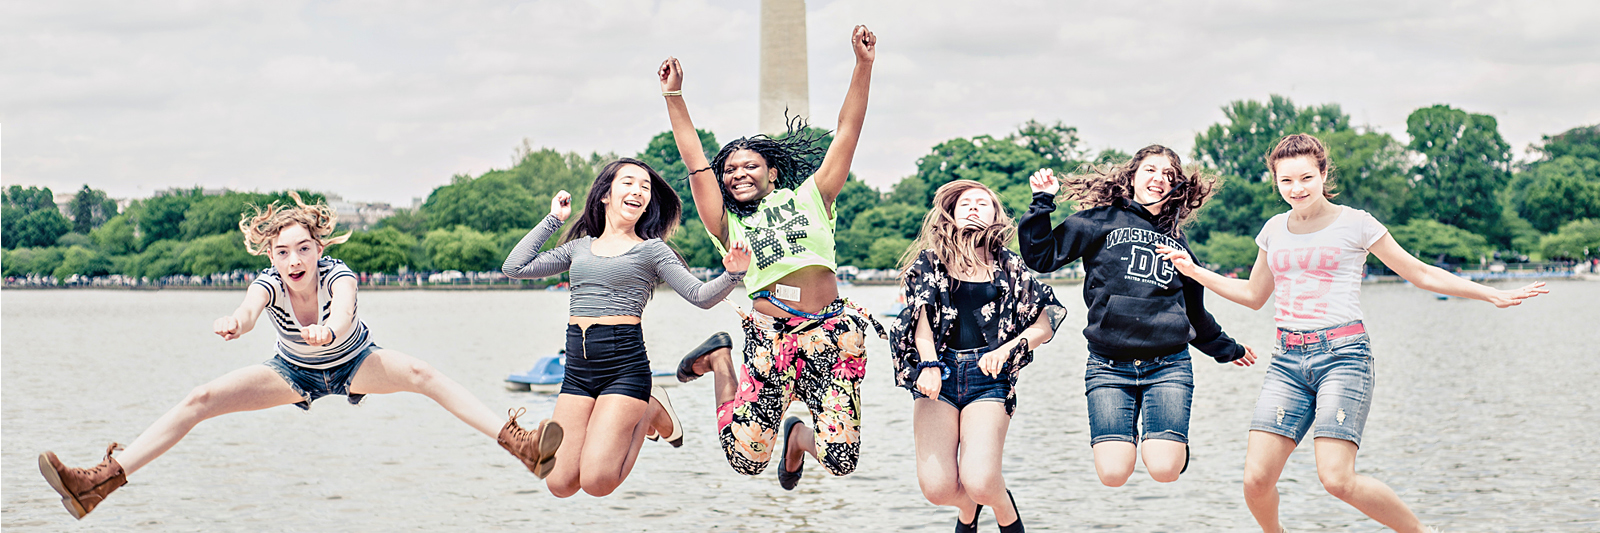 Students jumping in Washington D.C.